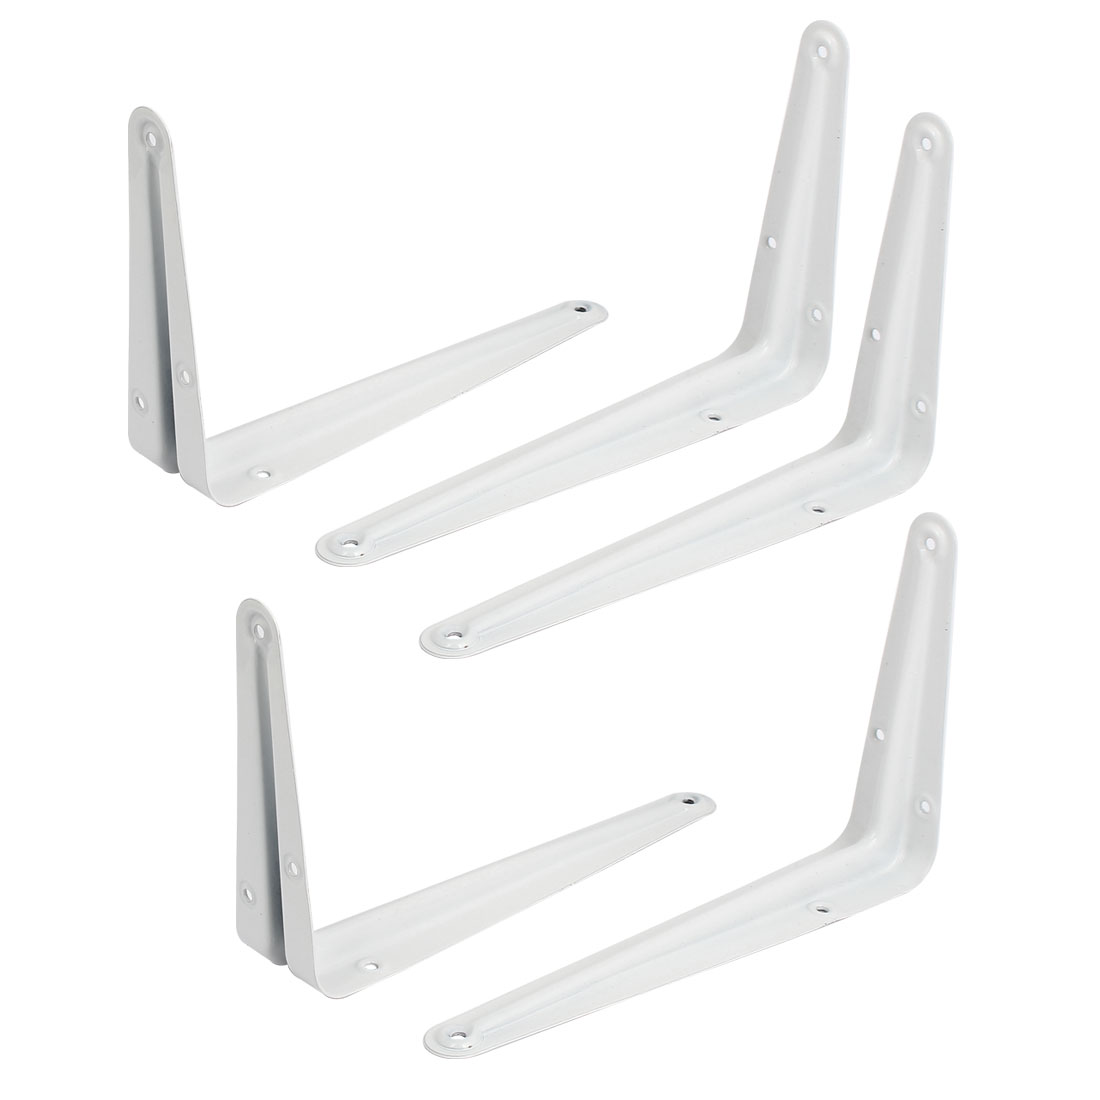 8 Inch Length L Shape Baked Enamel Metal Wall Shelf Support Bracket 5pcs